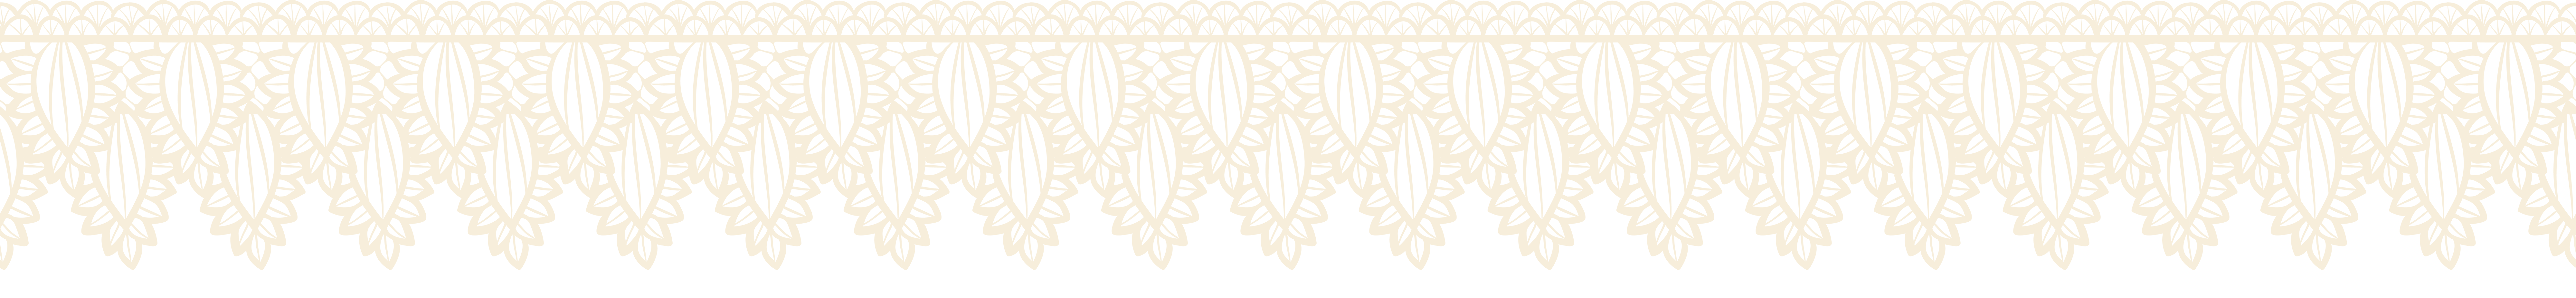 png free download Border png image gallery. Lace clipart clip art.